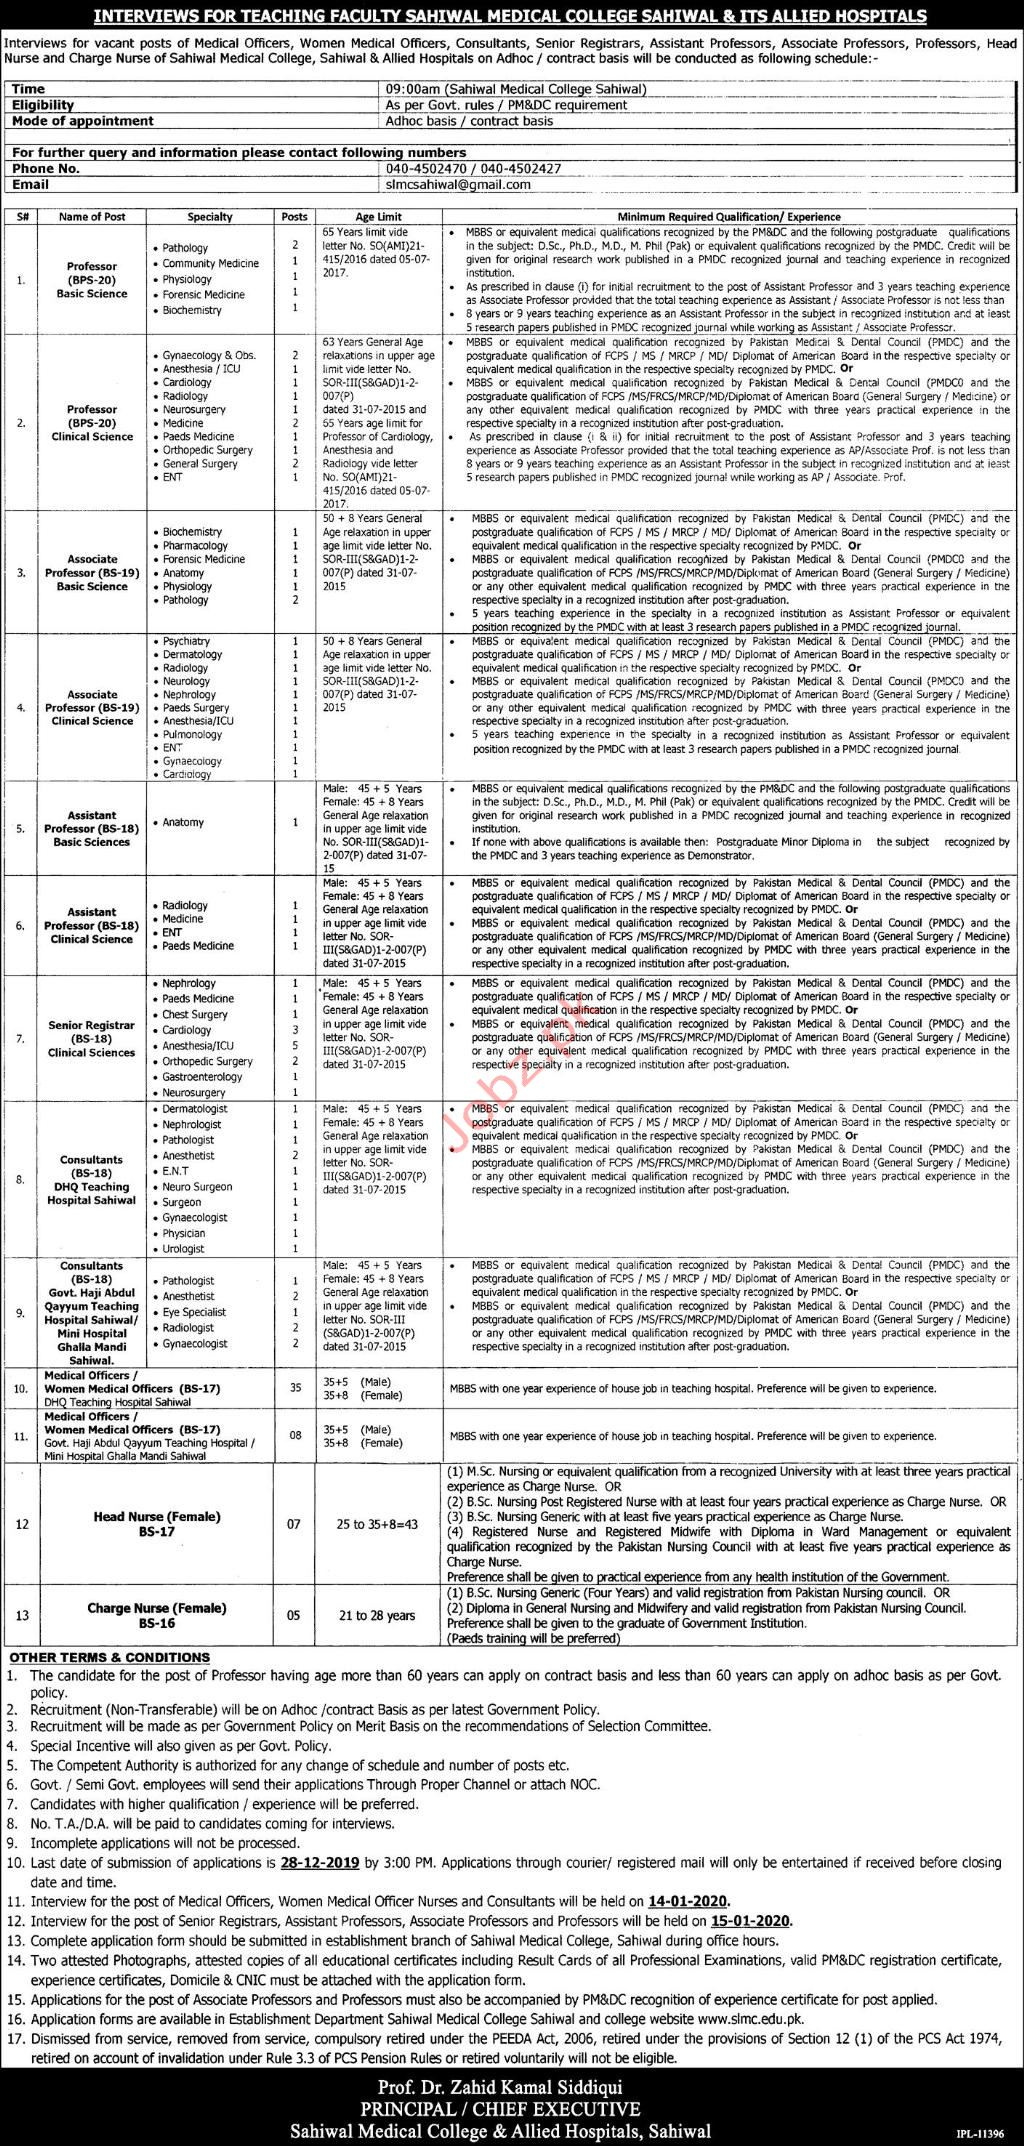 Sahiwal Medical College & Allied Hospitals Interviews 2020